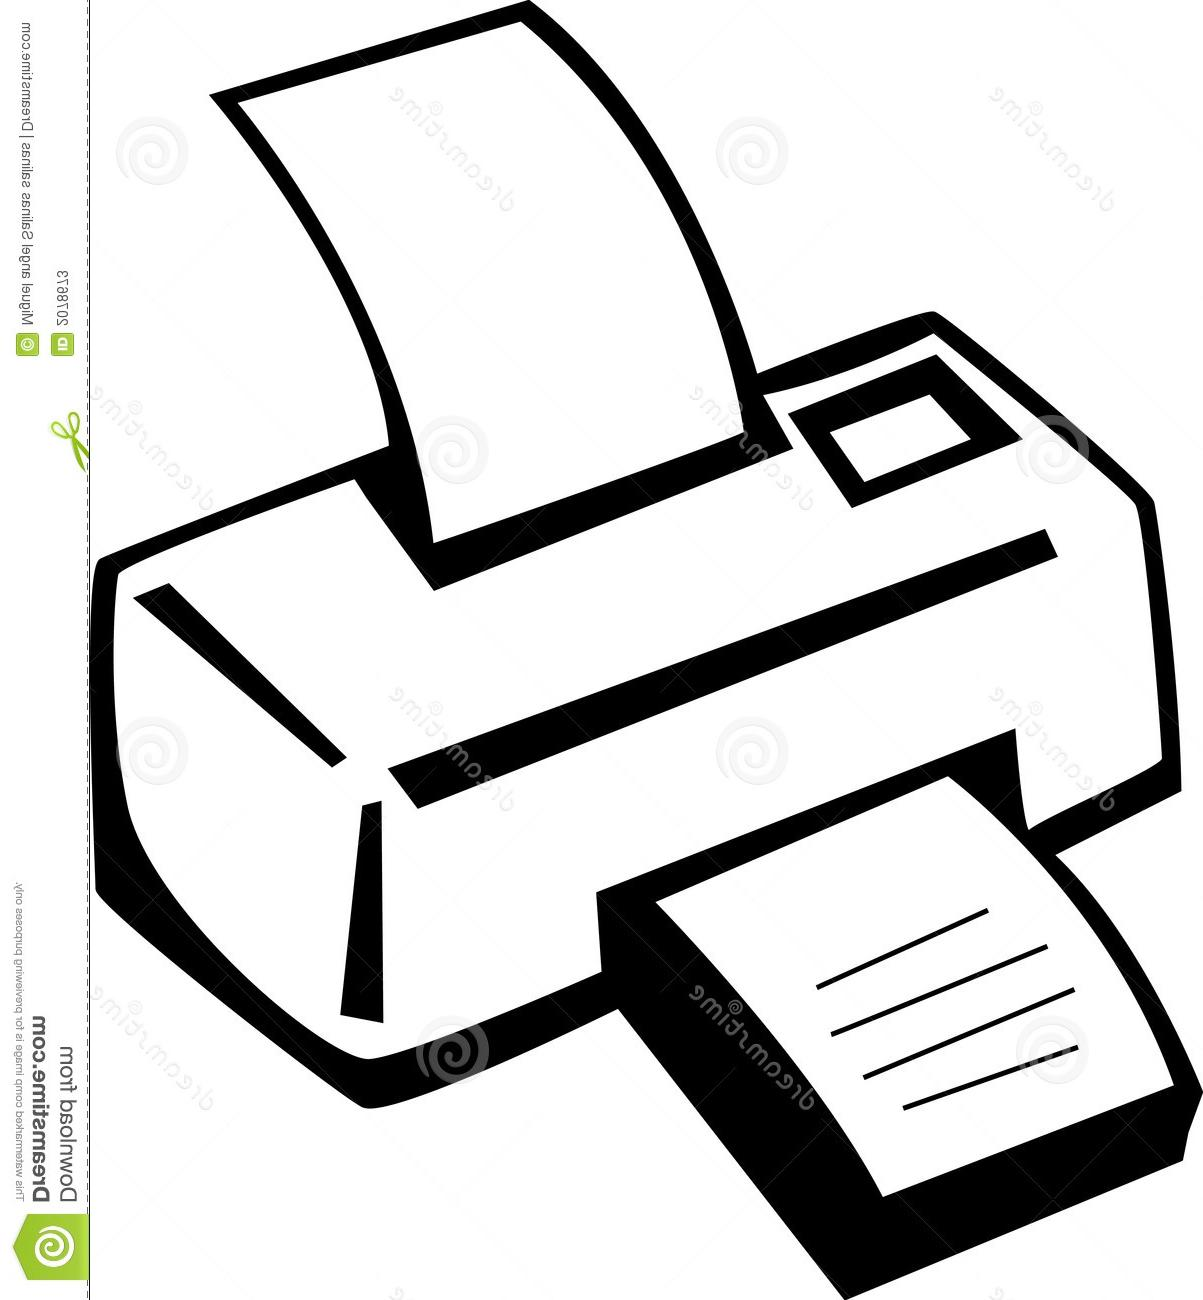 Printer Clipart.